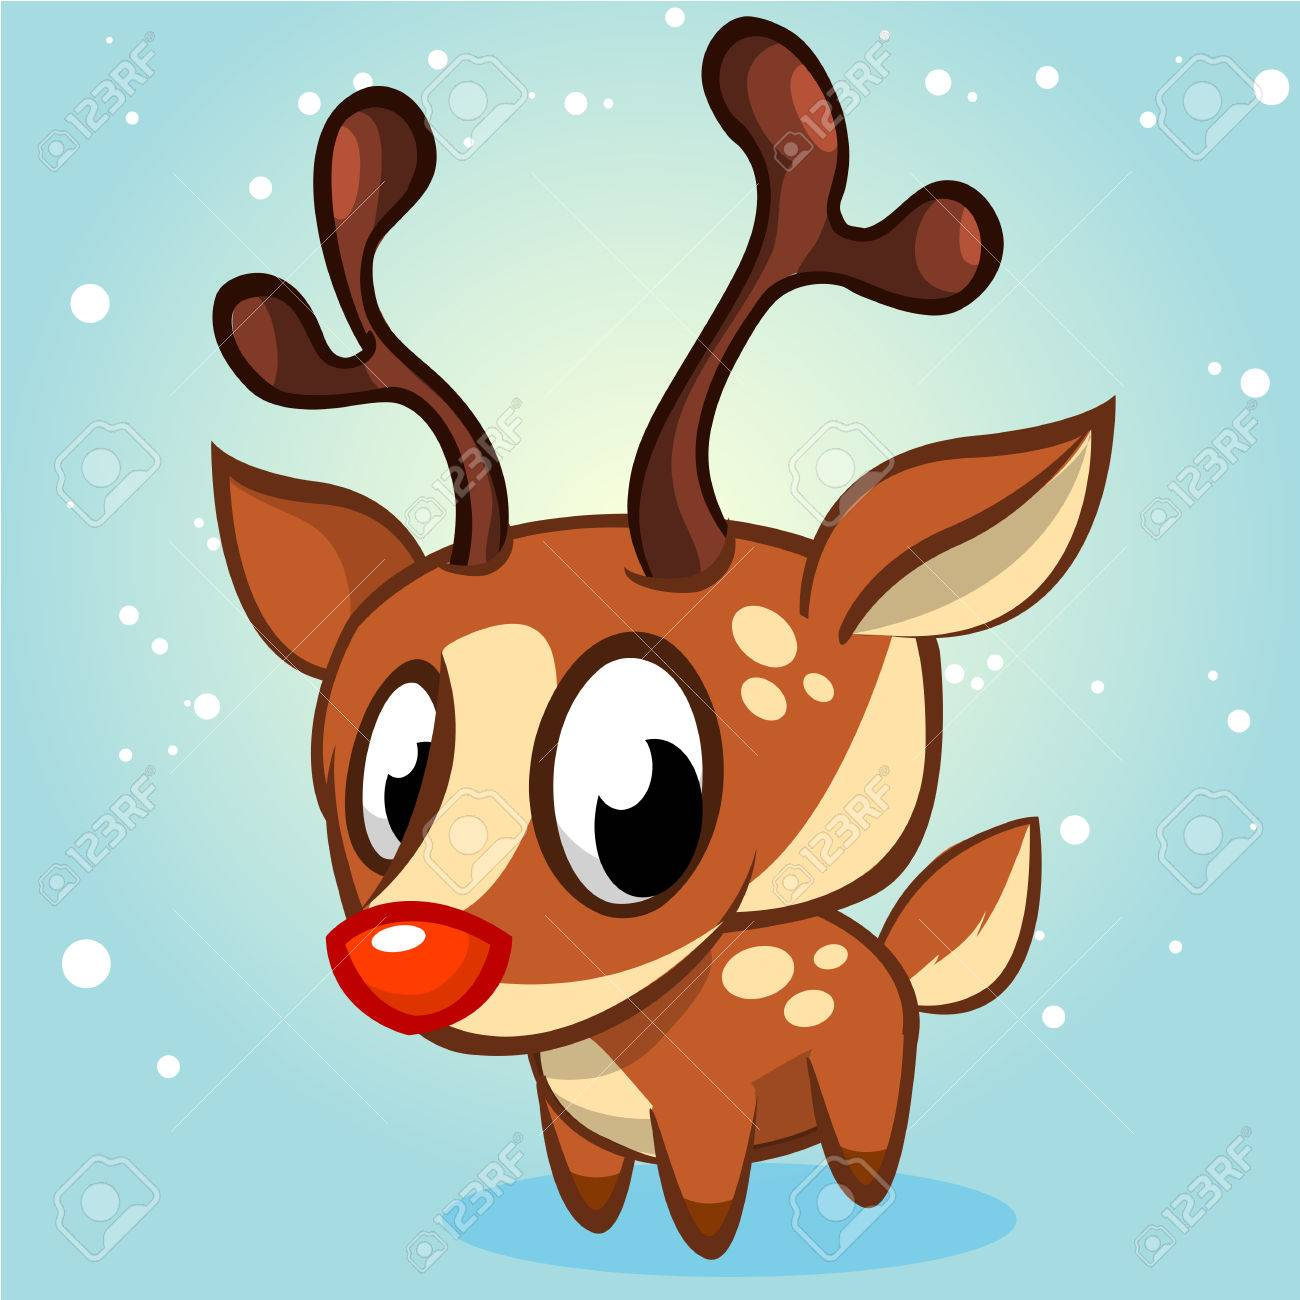 Cute Christmas Reindeer Vector Illustration On White Background Stock